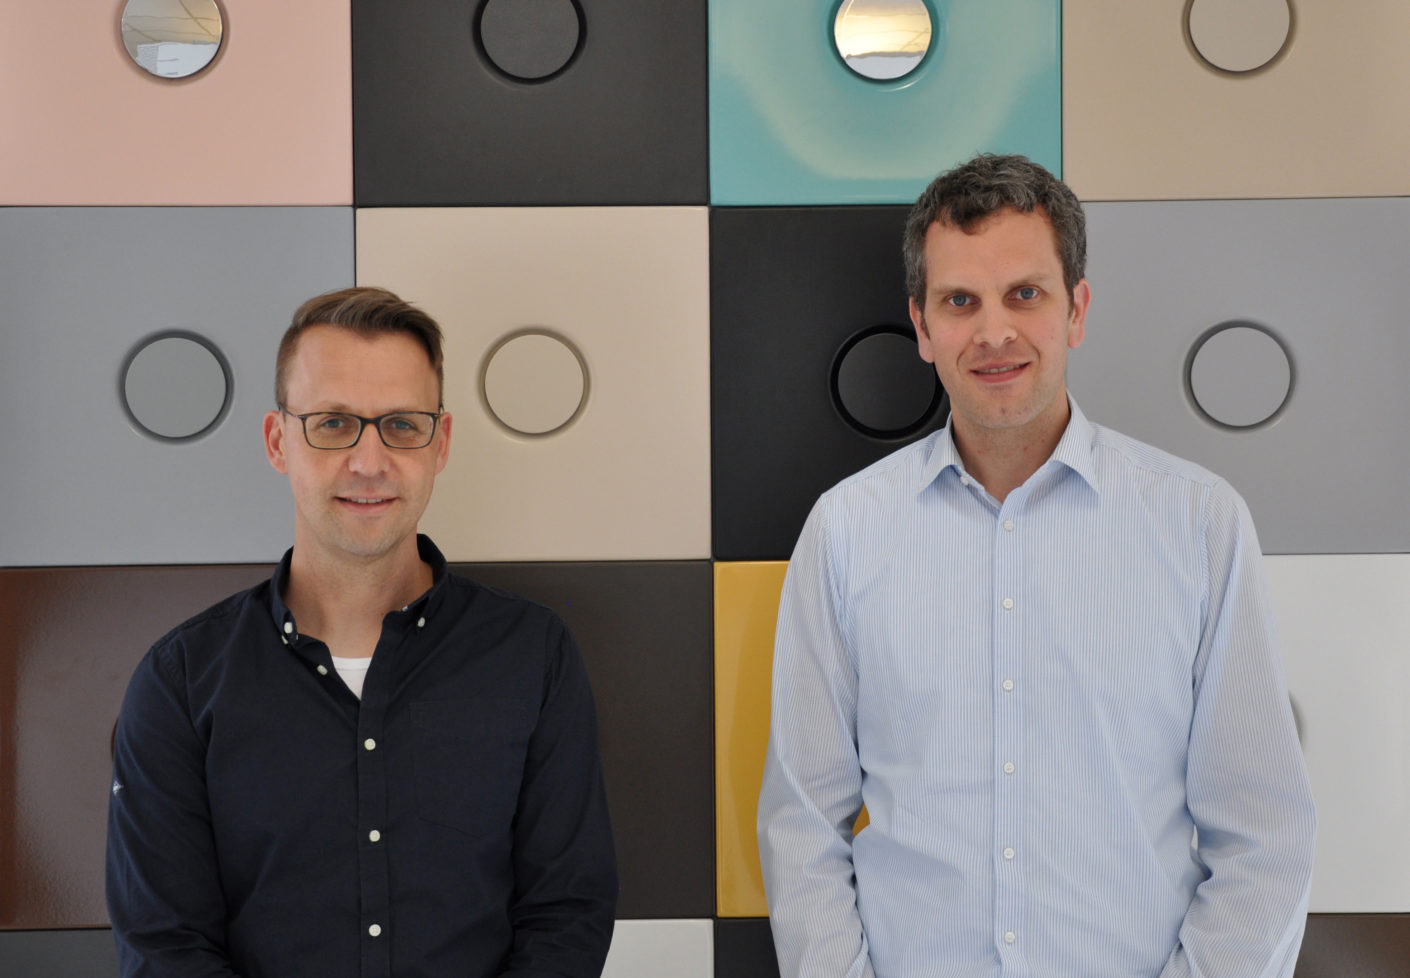 The bathroom is colorful: marketing manager Sven Rensinghoff and managing director Thilo Pahl from Bette in front of the color samples.